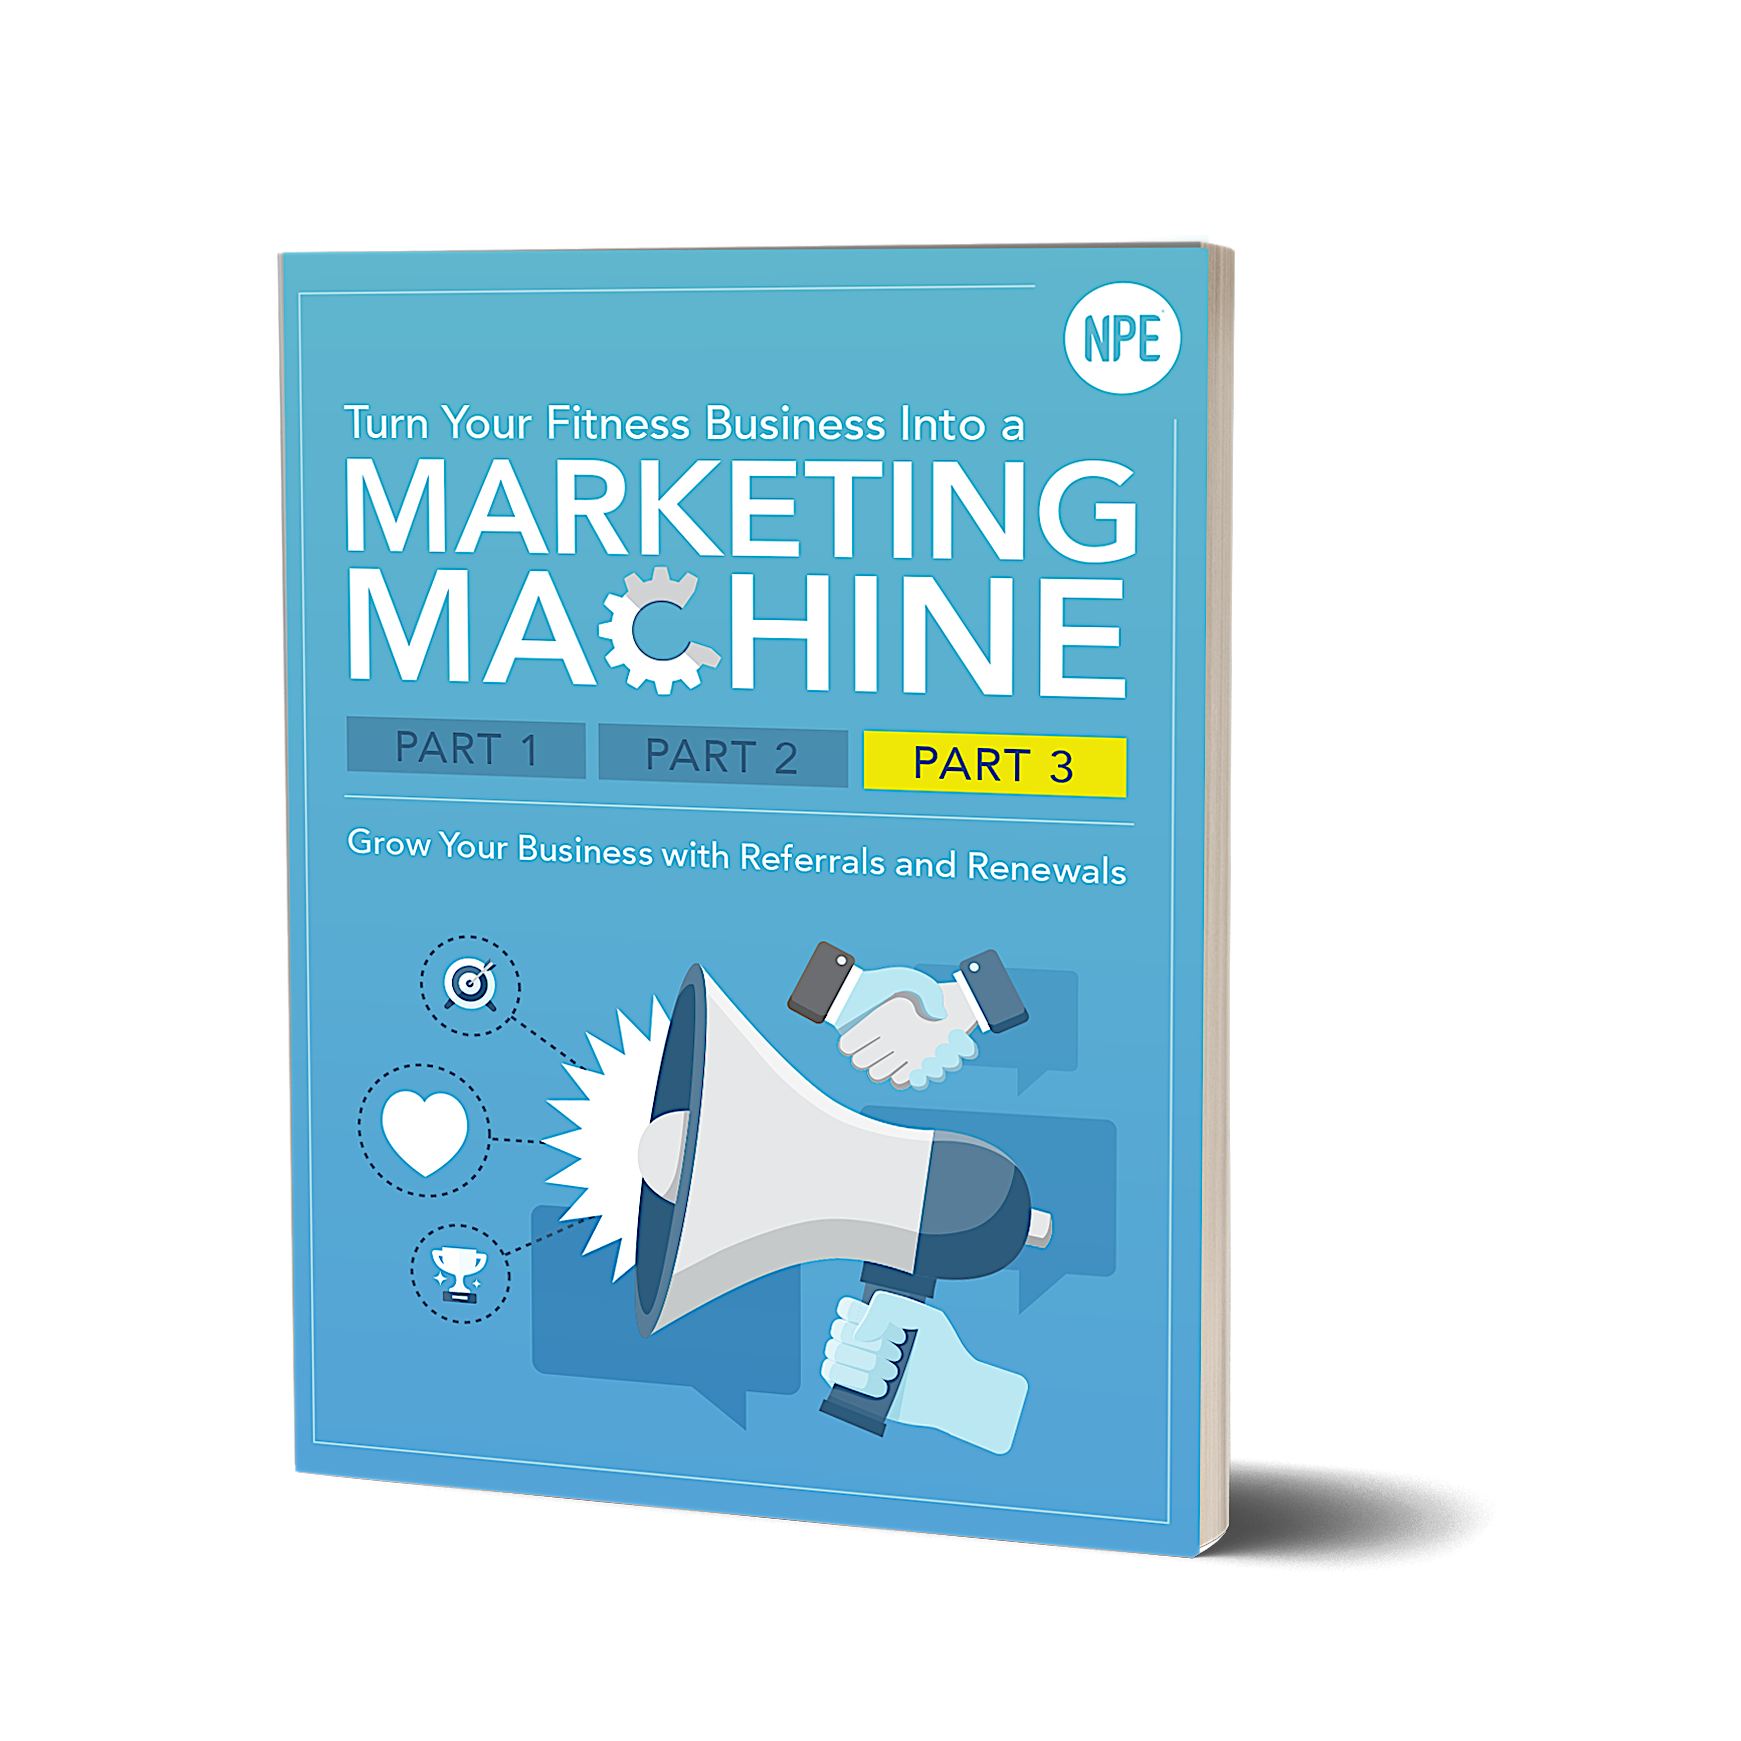 Turn Your Fitness Business Into A Marketing Machine: Part 3 Image